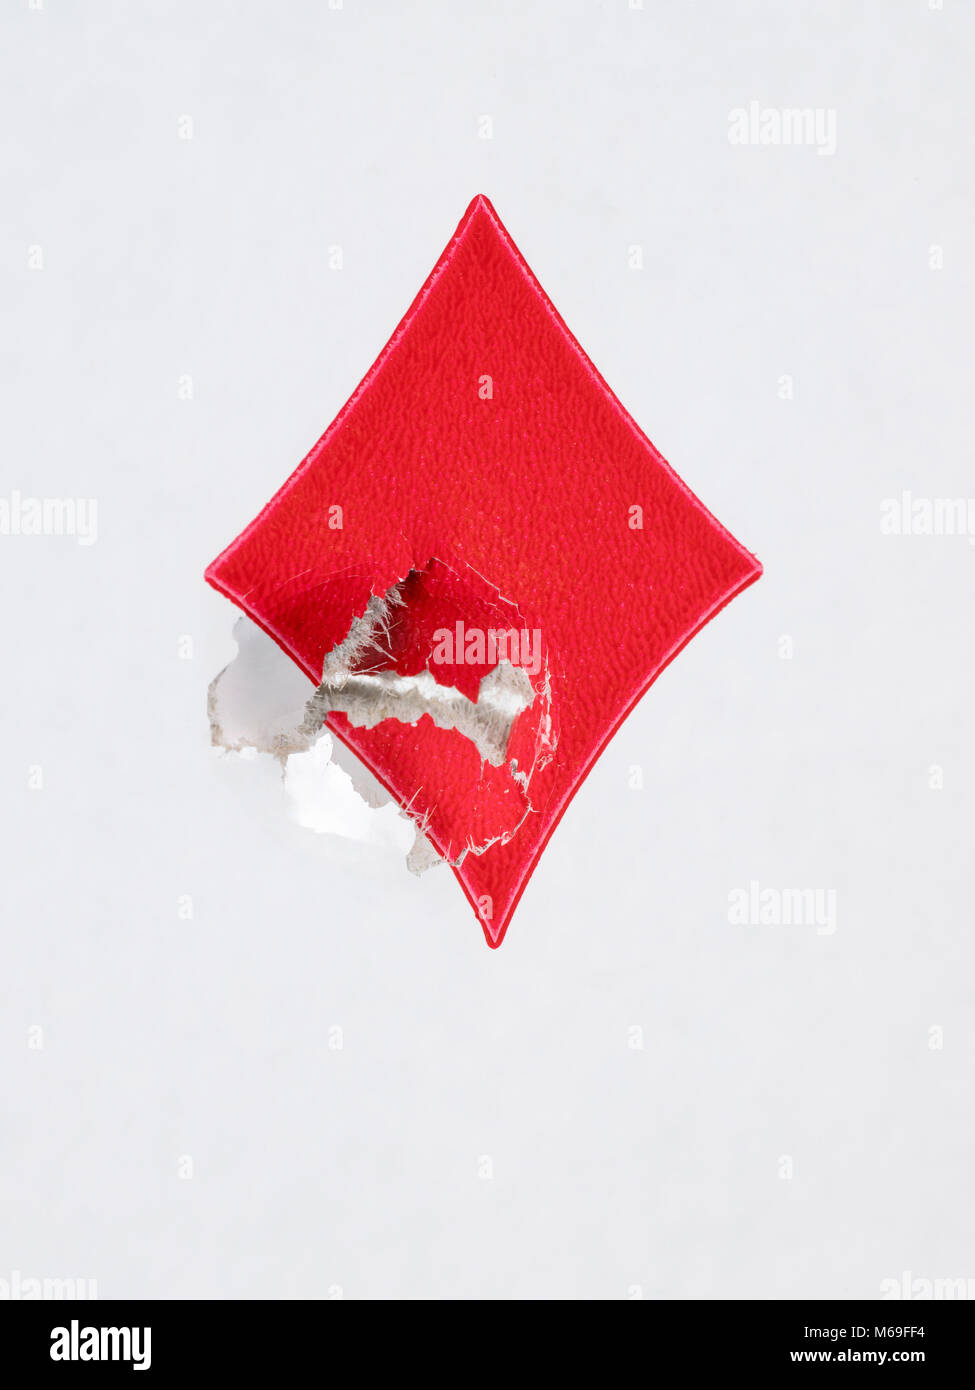 Shooted card. Red diamonds sign close up with a bullet hole - Stock Image